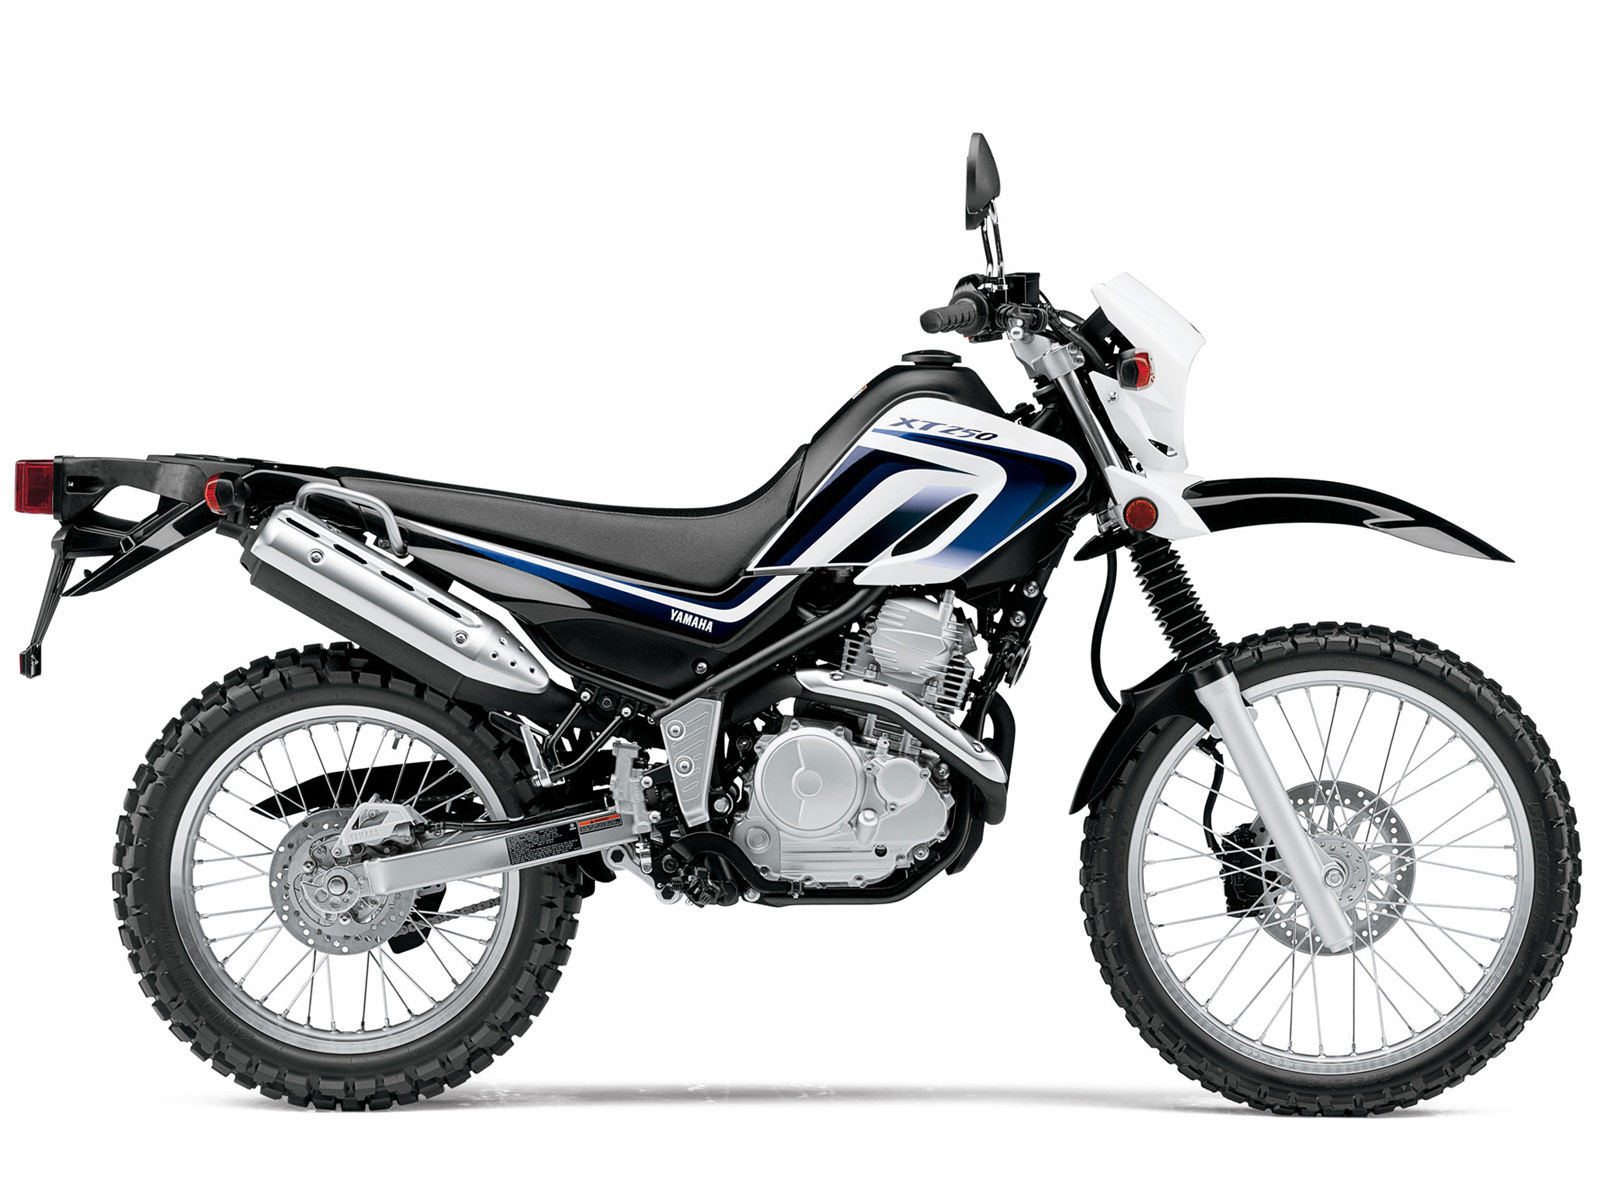 Yamaha Xt250 Review Photos Specifications Insurance